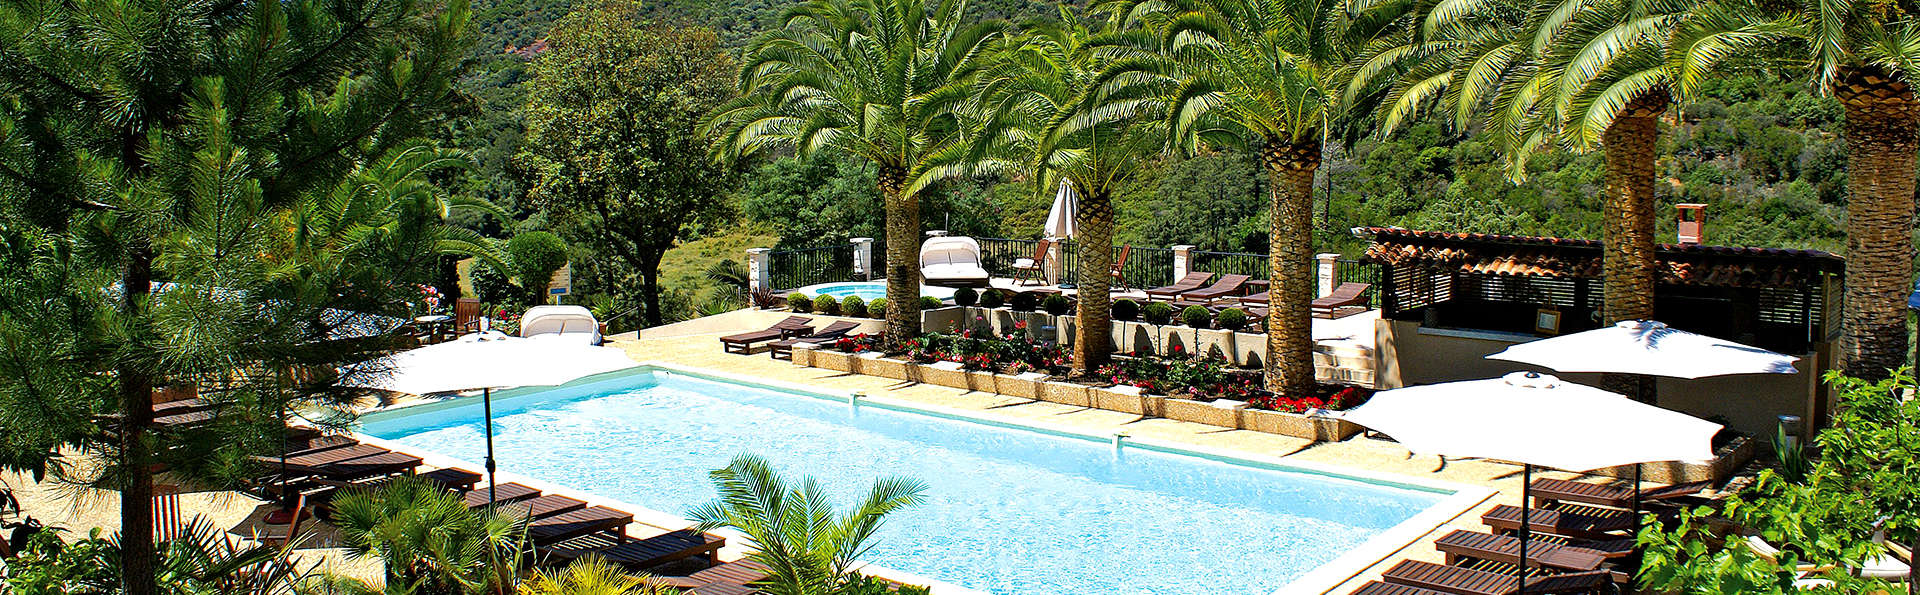 Domaine de l'Oriu - Edit_Pool.jpg